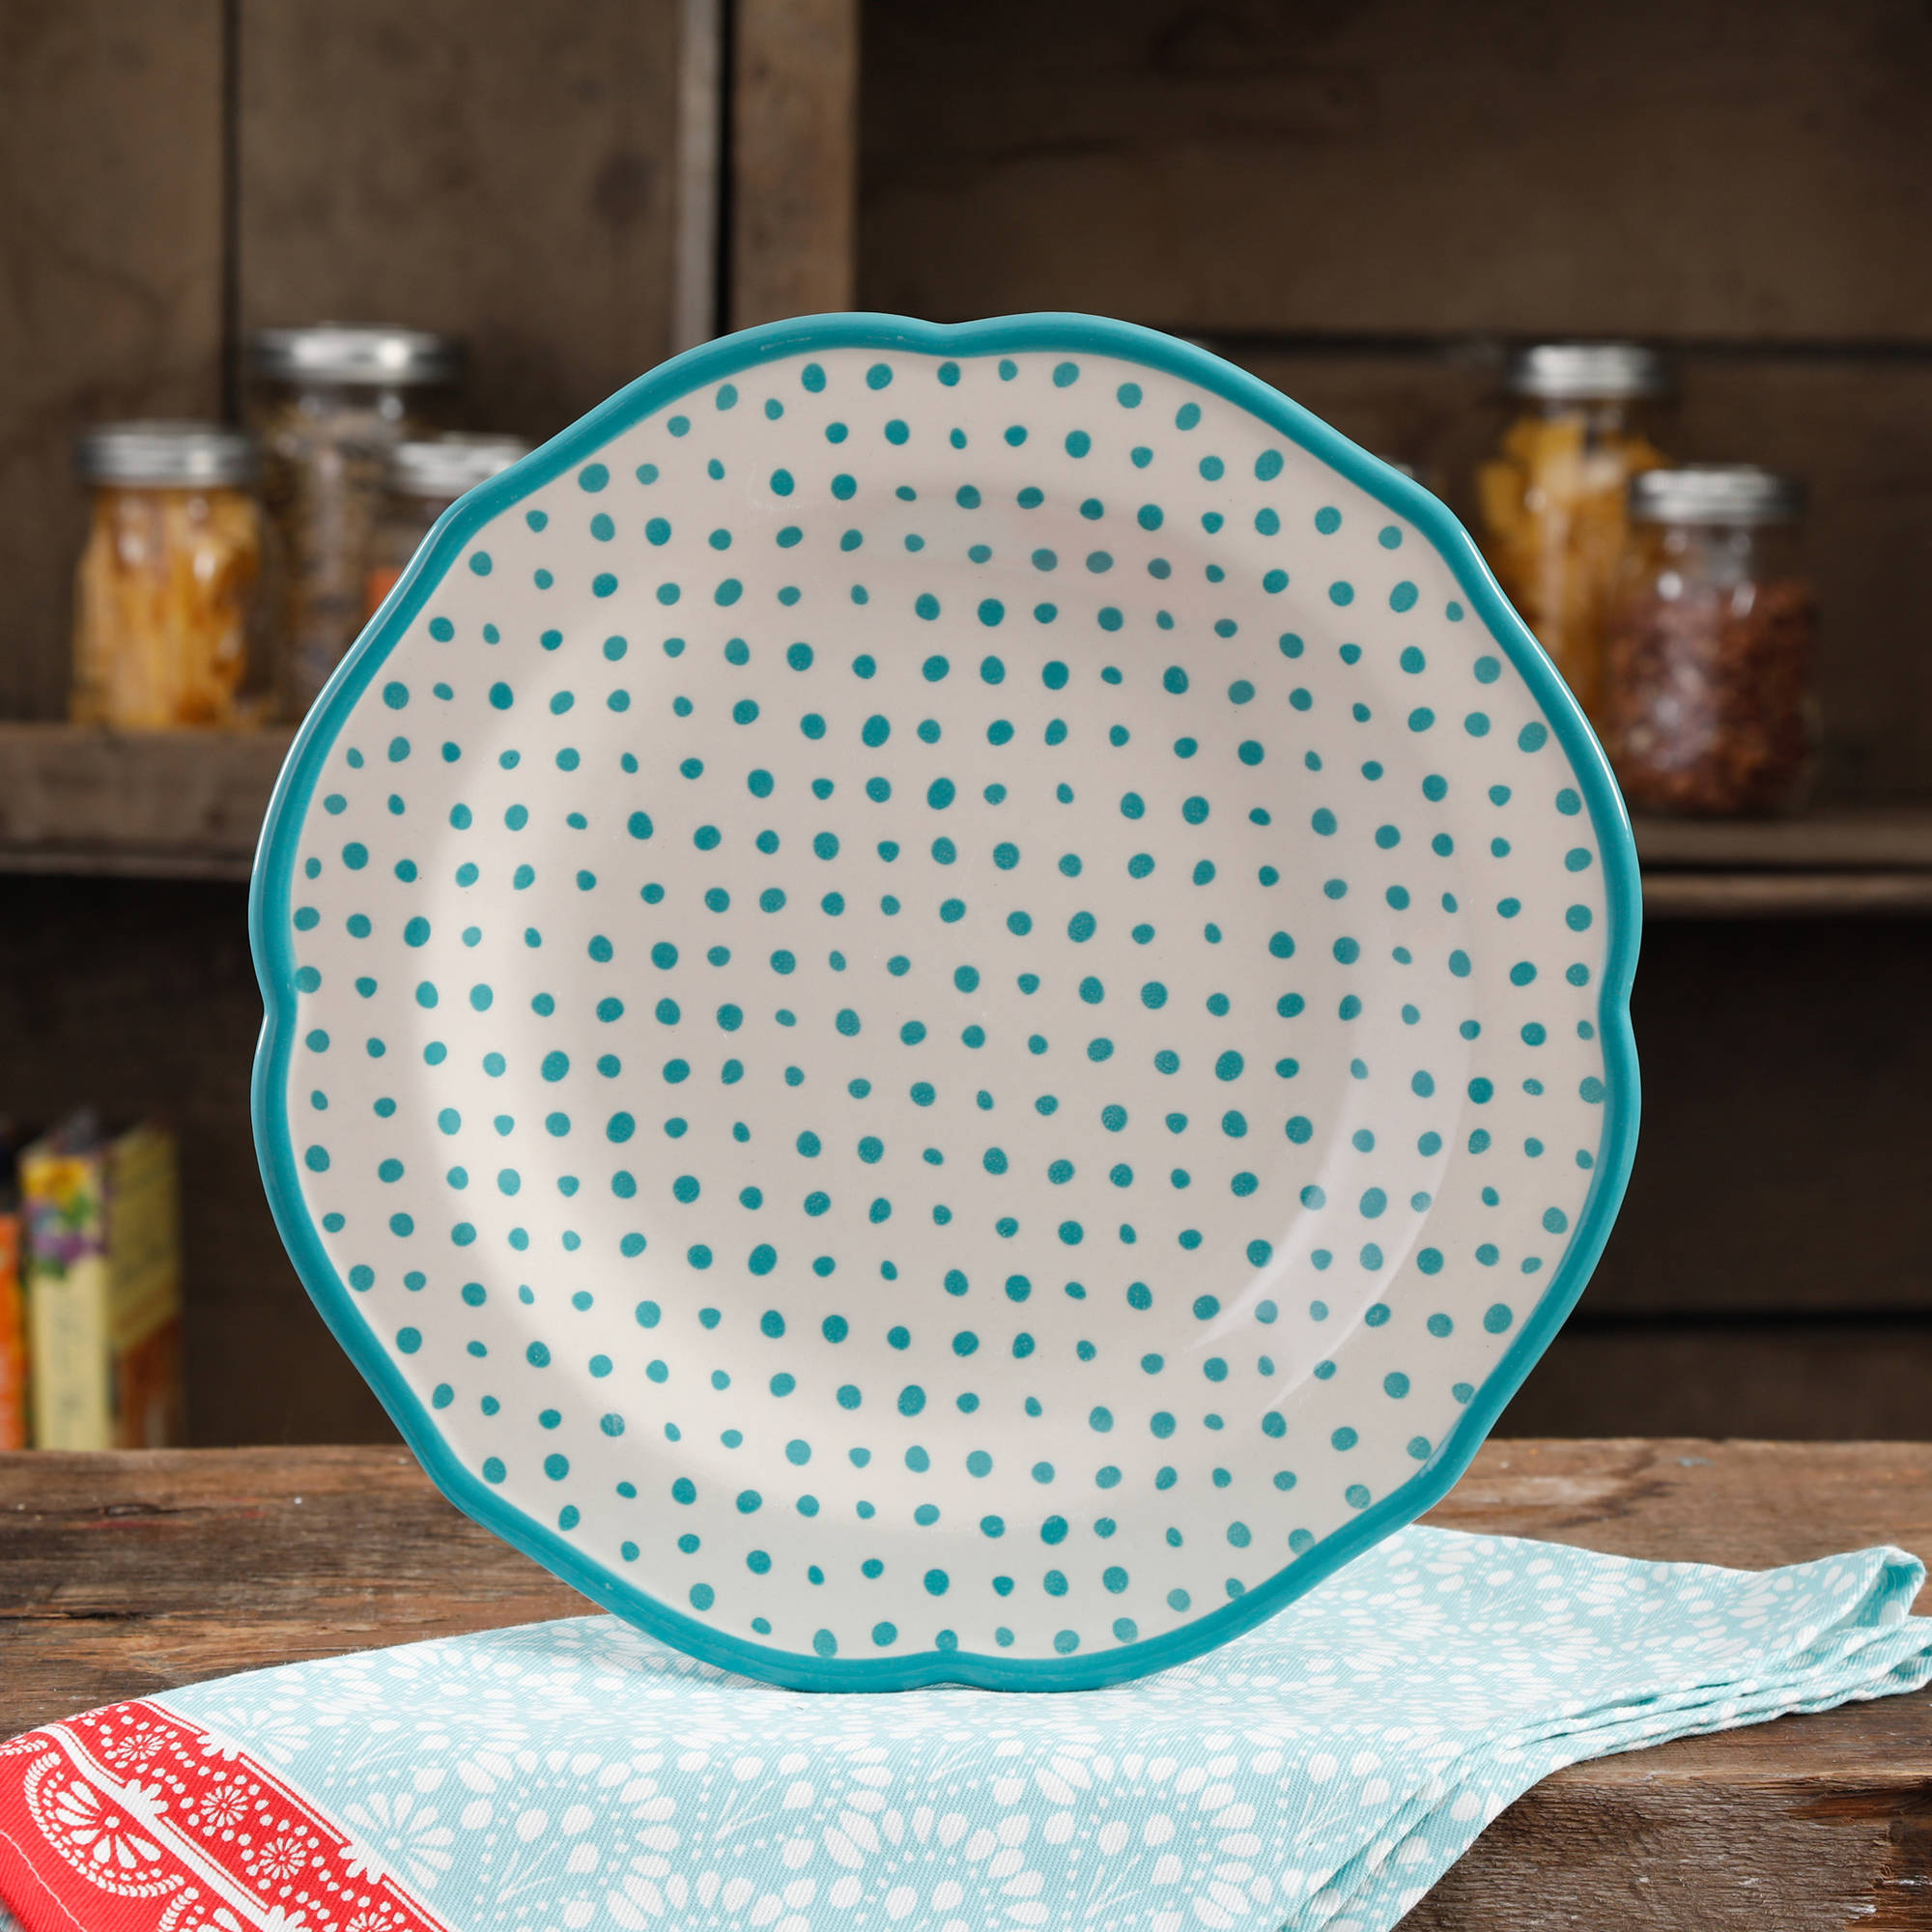 "The Pioneer Woman Retro Dot 10.5"" Teal Dinner Plate by The Pioneer Woman"